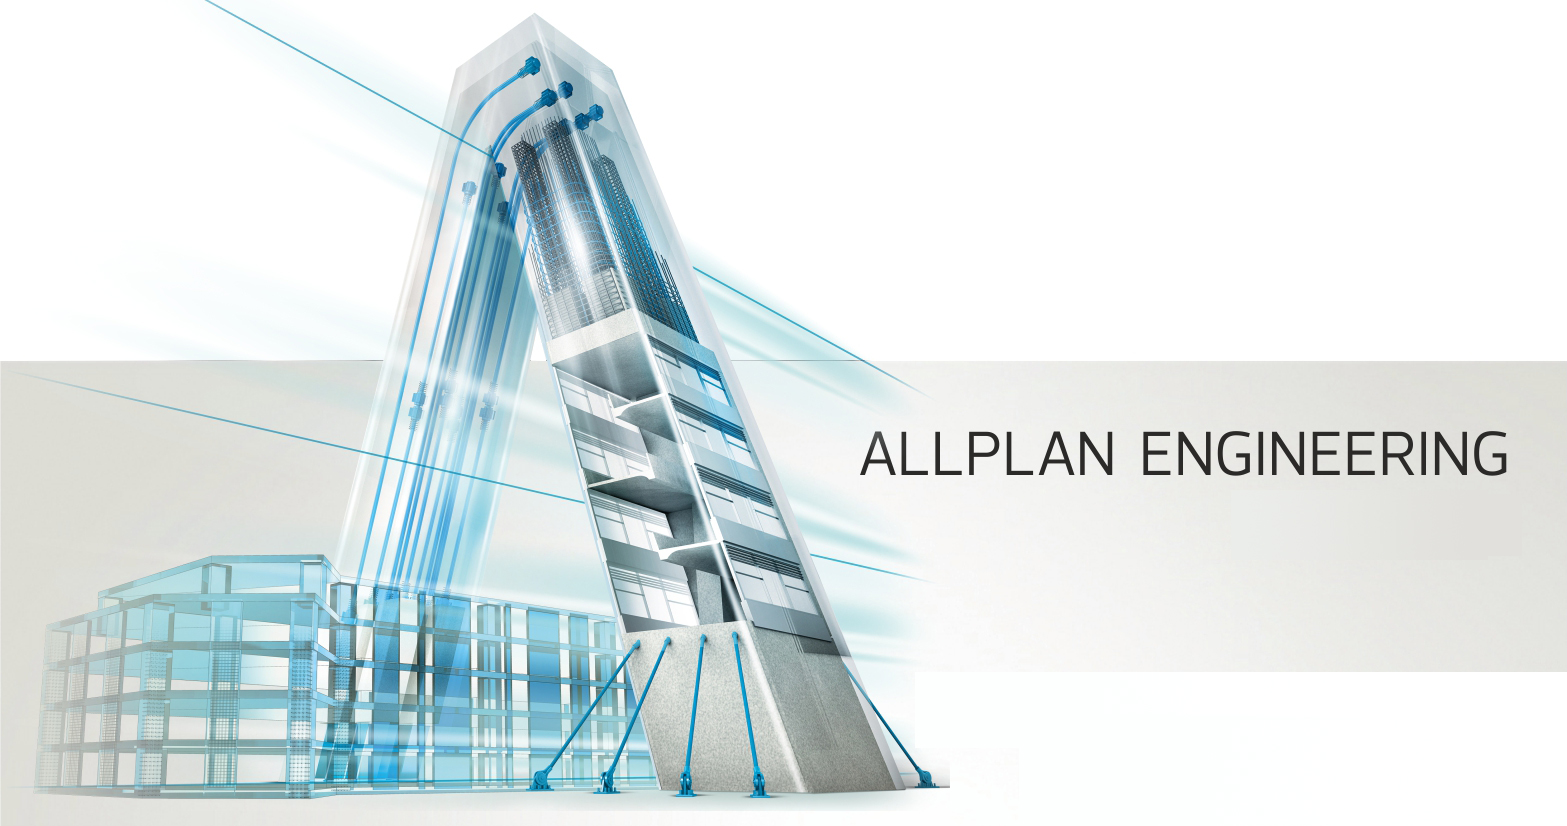 Allplan Engineering